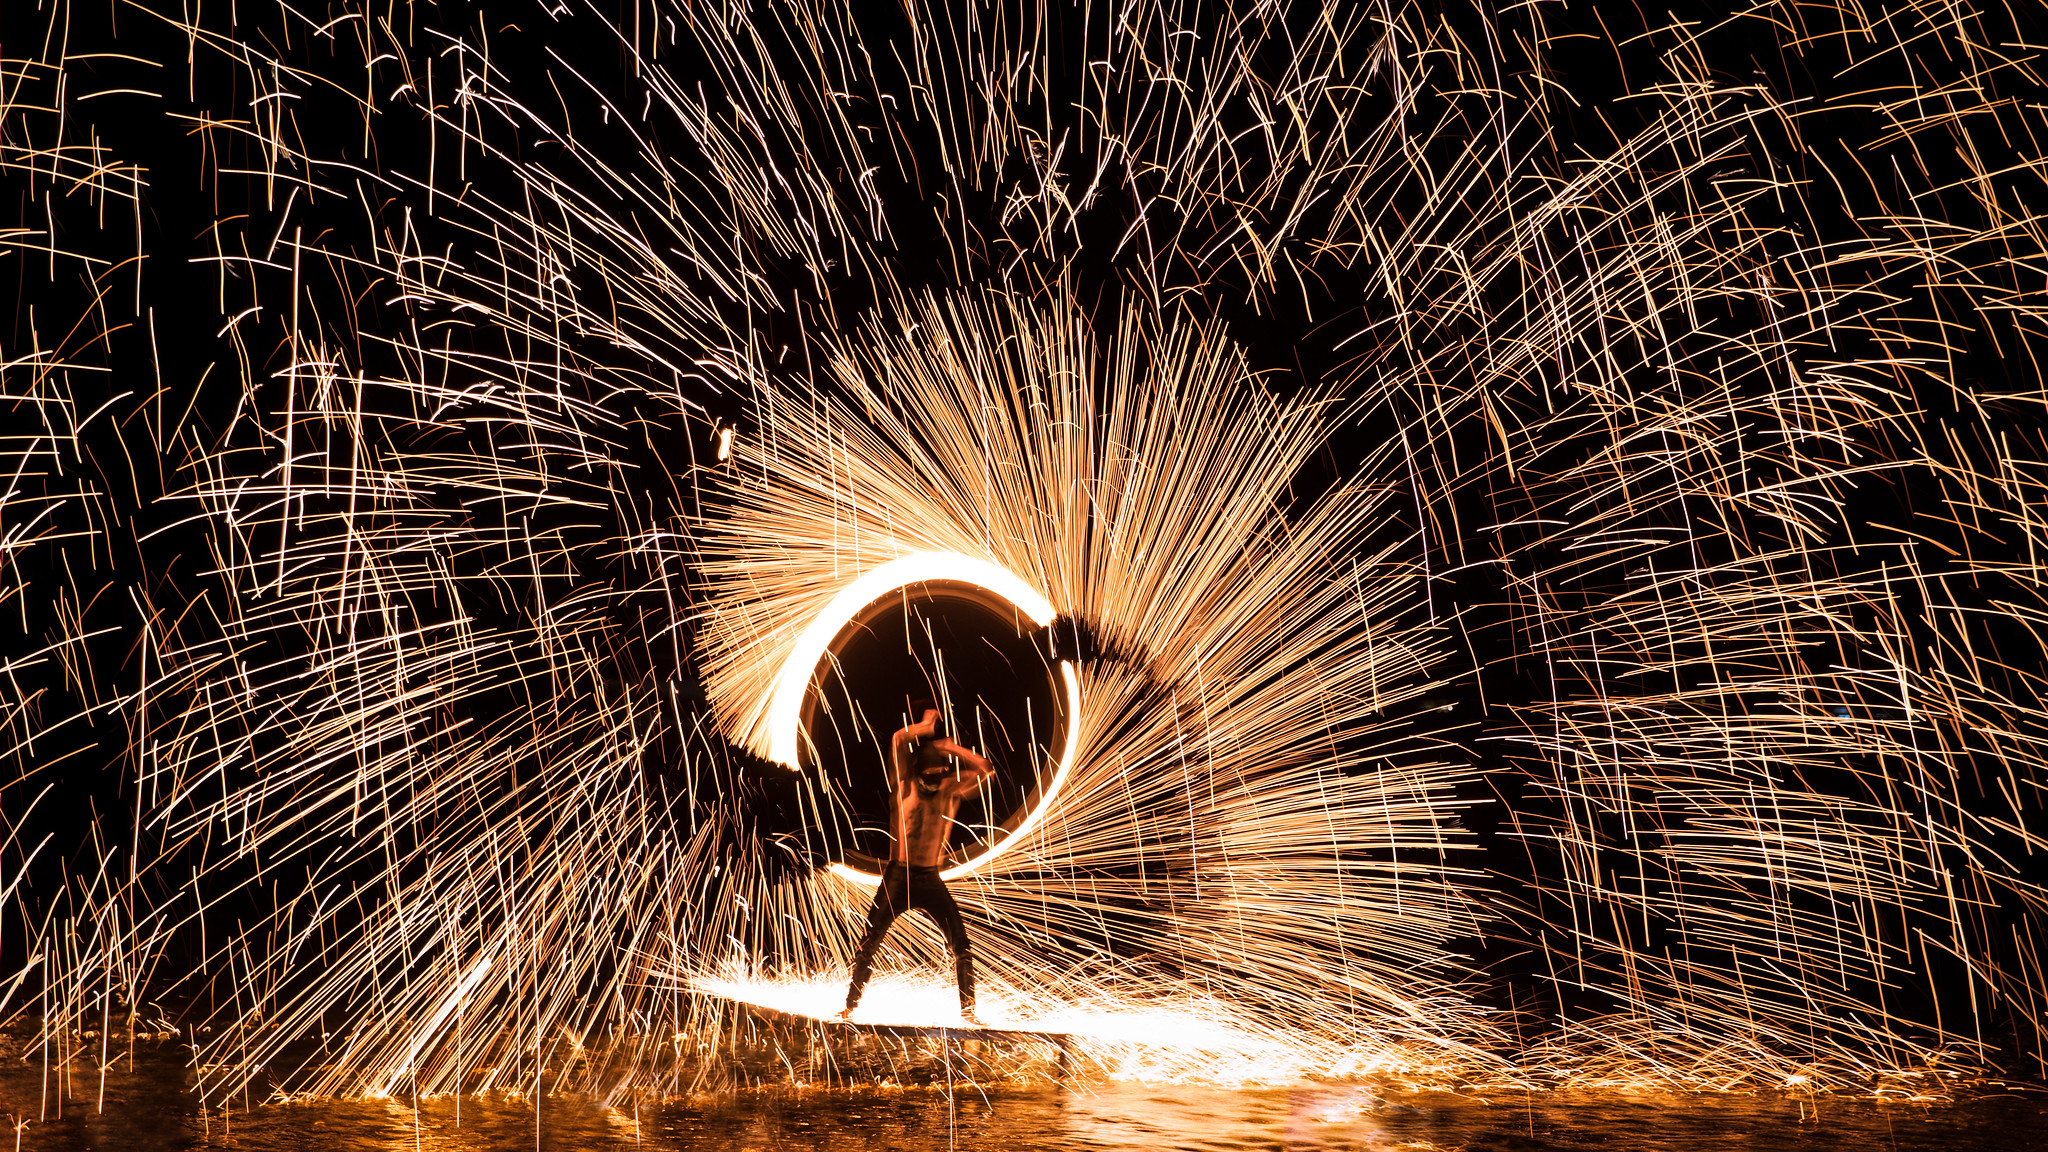 Fire dancing at night in Koh Samui